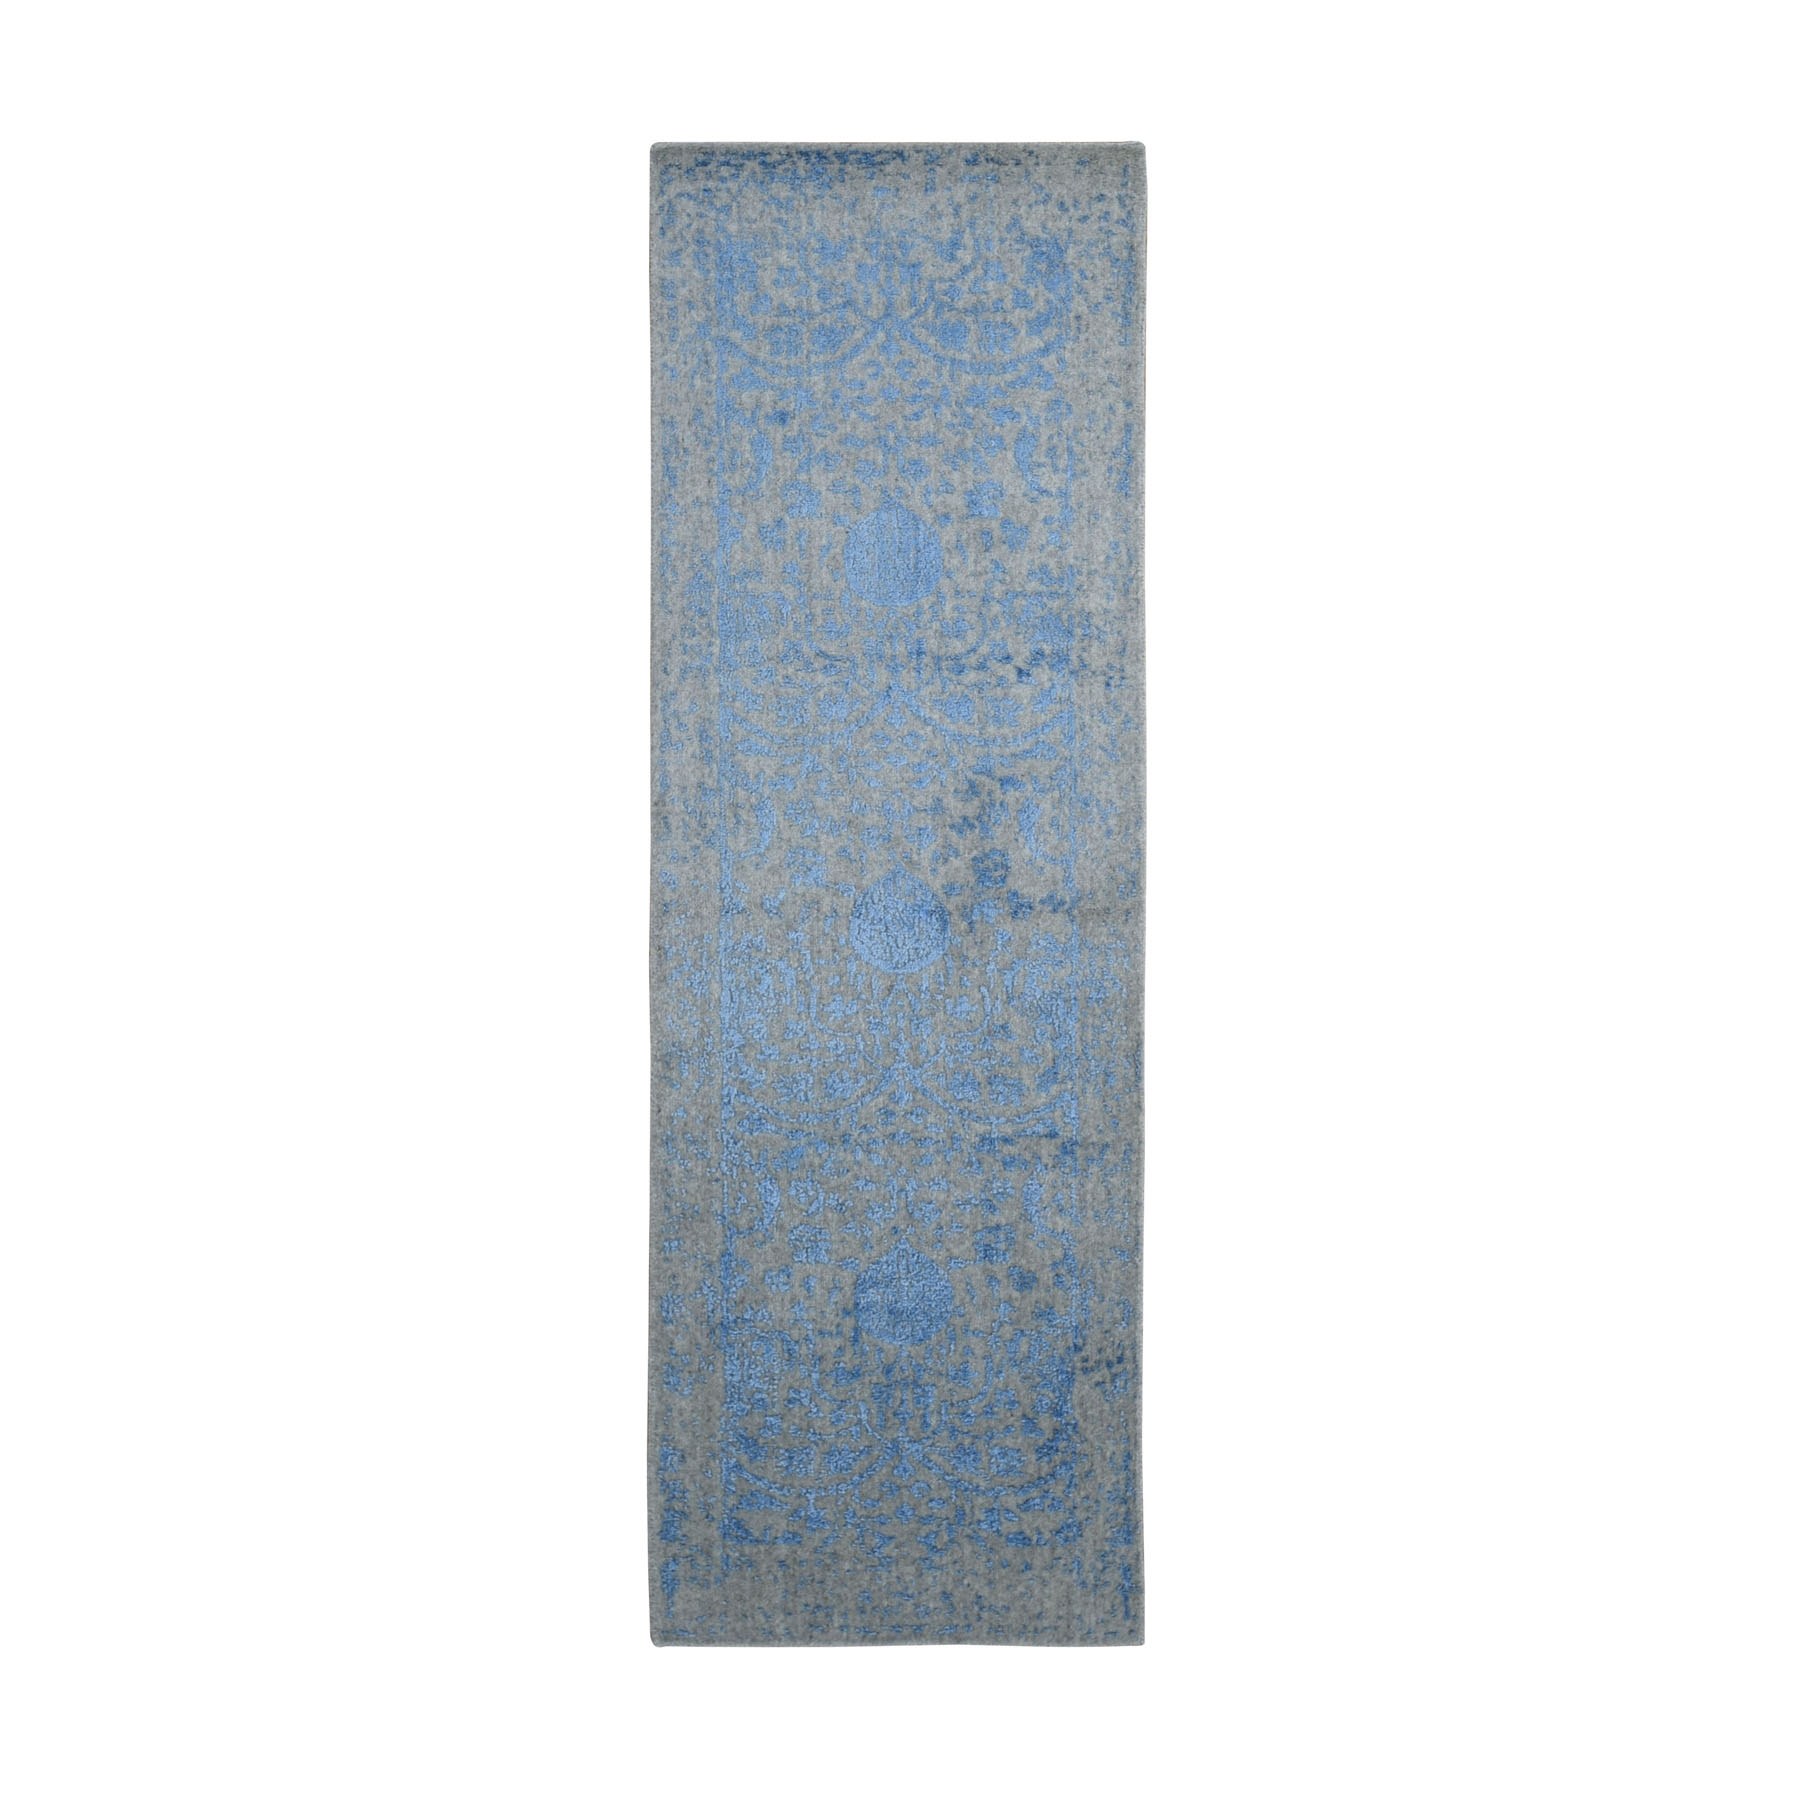 "2'5""X7'9"" Blue Jacquard Hand Loomed Wool And Art Silk Pomegranate Design Runner Oriental Rug moad9a7a"